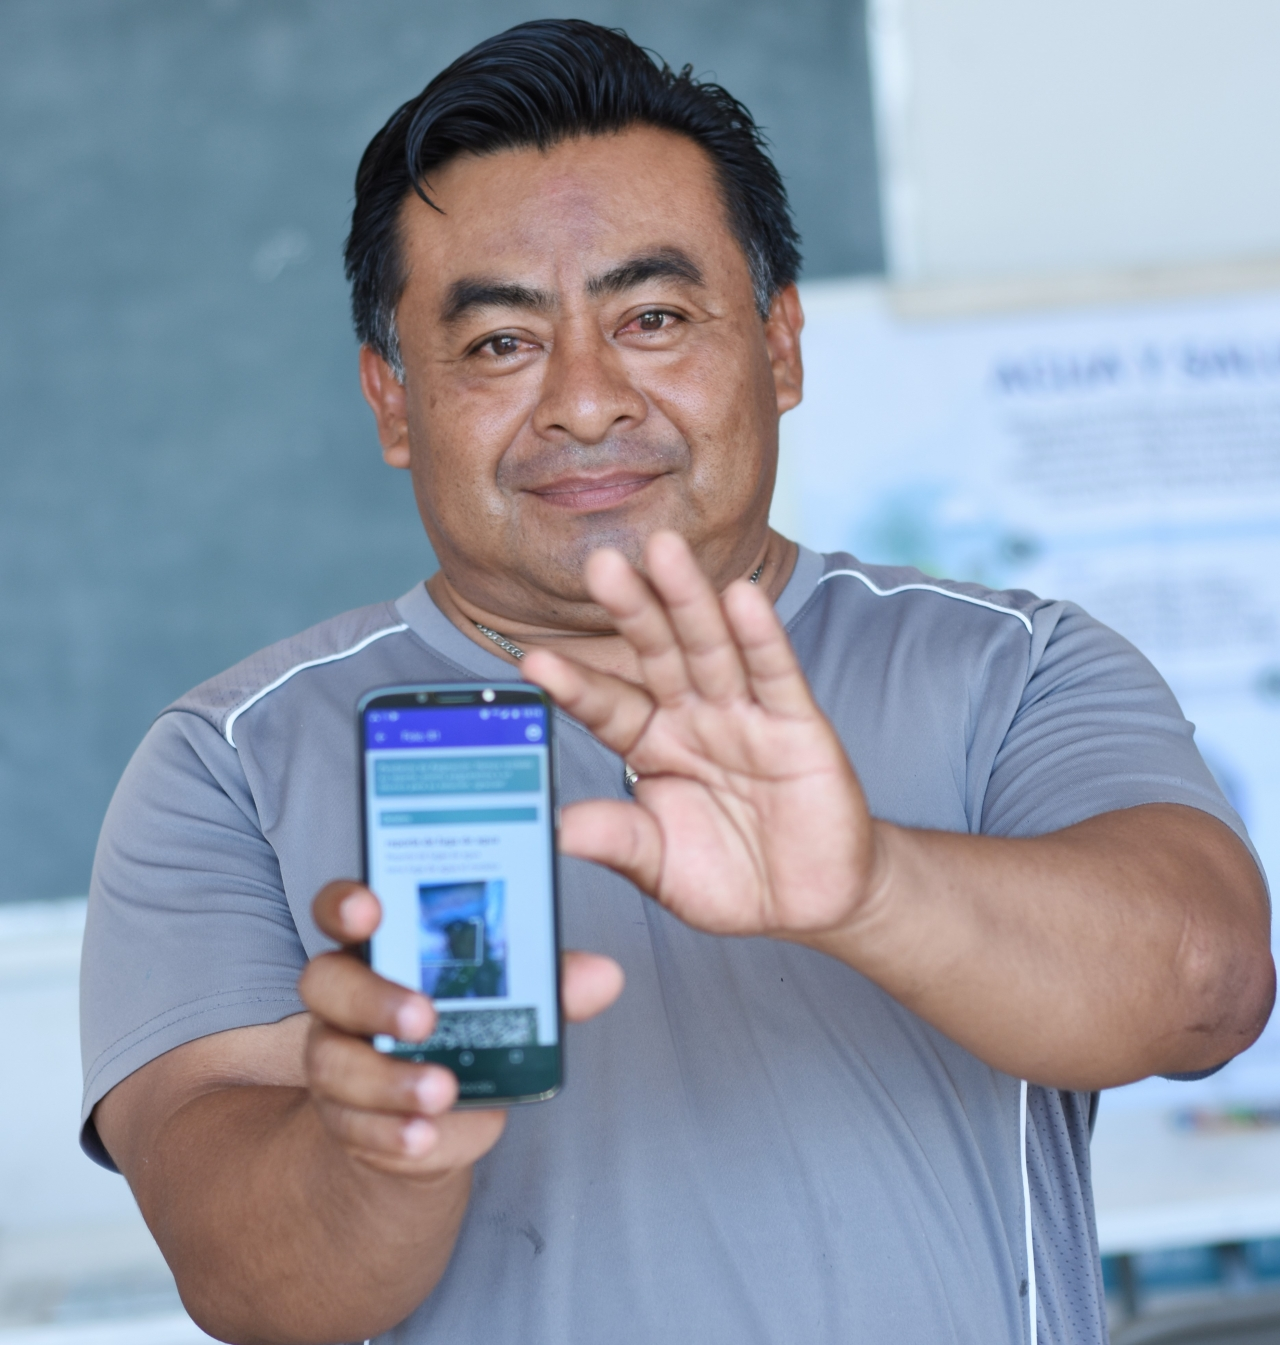 Man holding his phone, showing the app